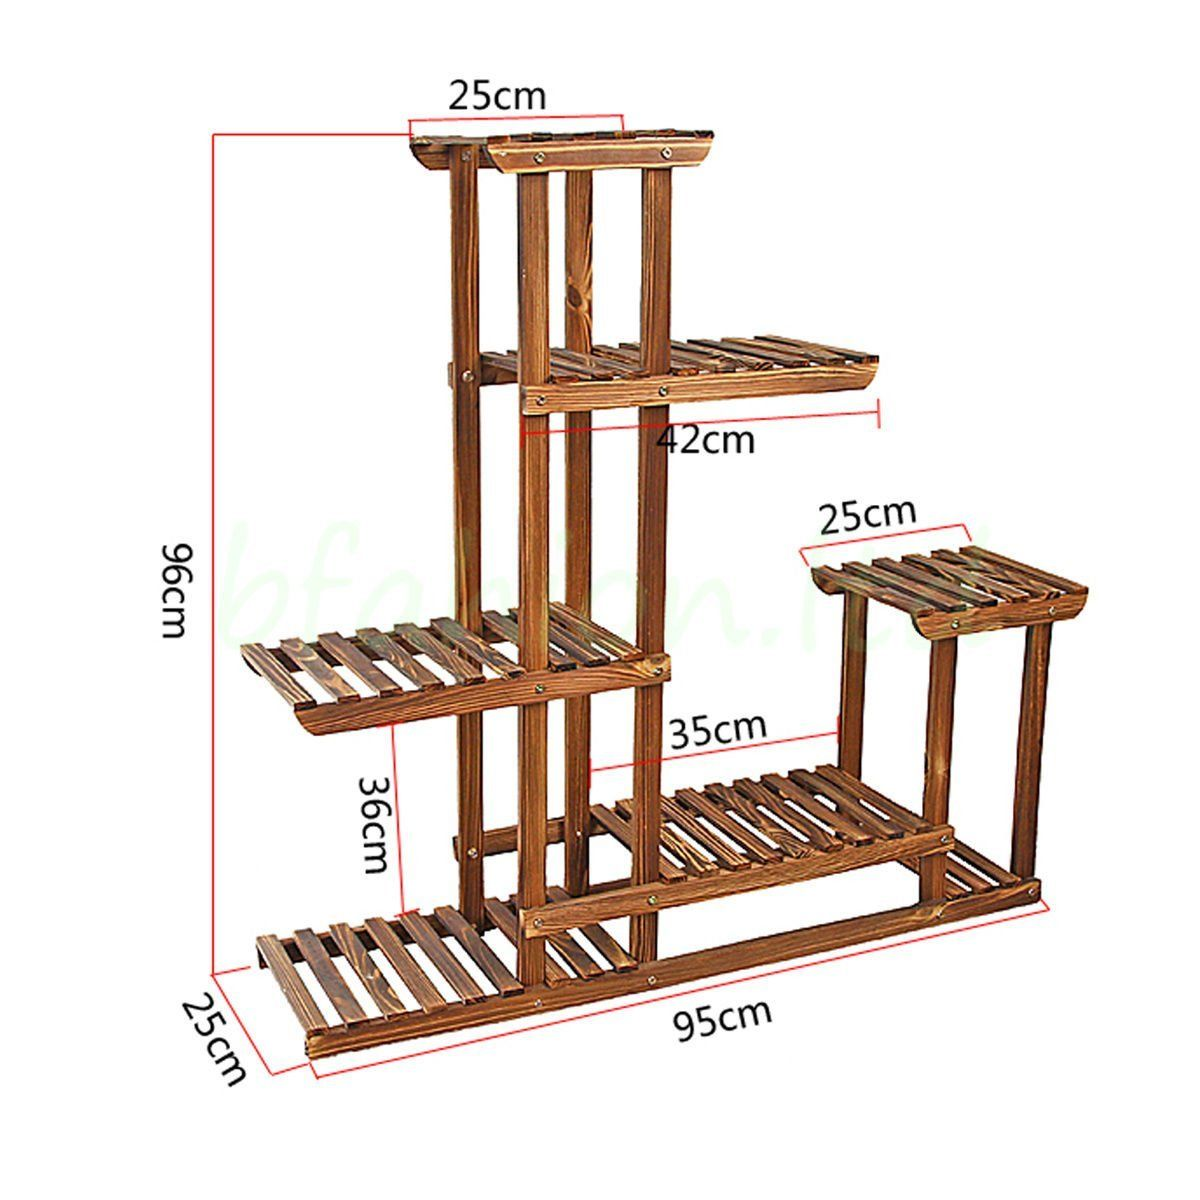 Malayas Wooden Plant Flower Display Stand Wood P*T Shelf 640 x 480